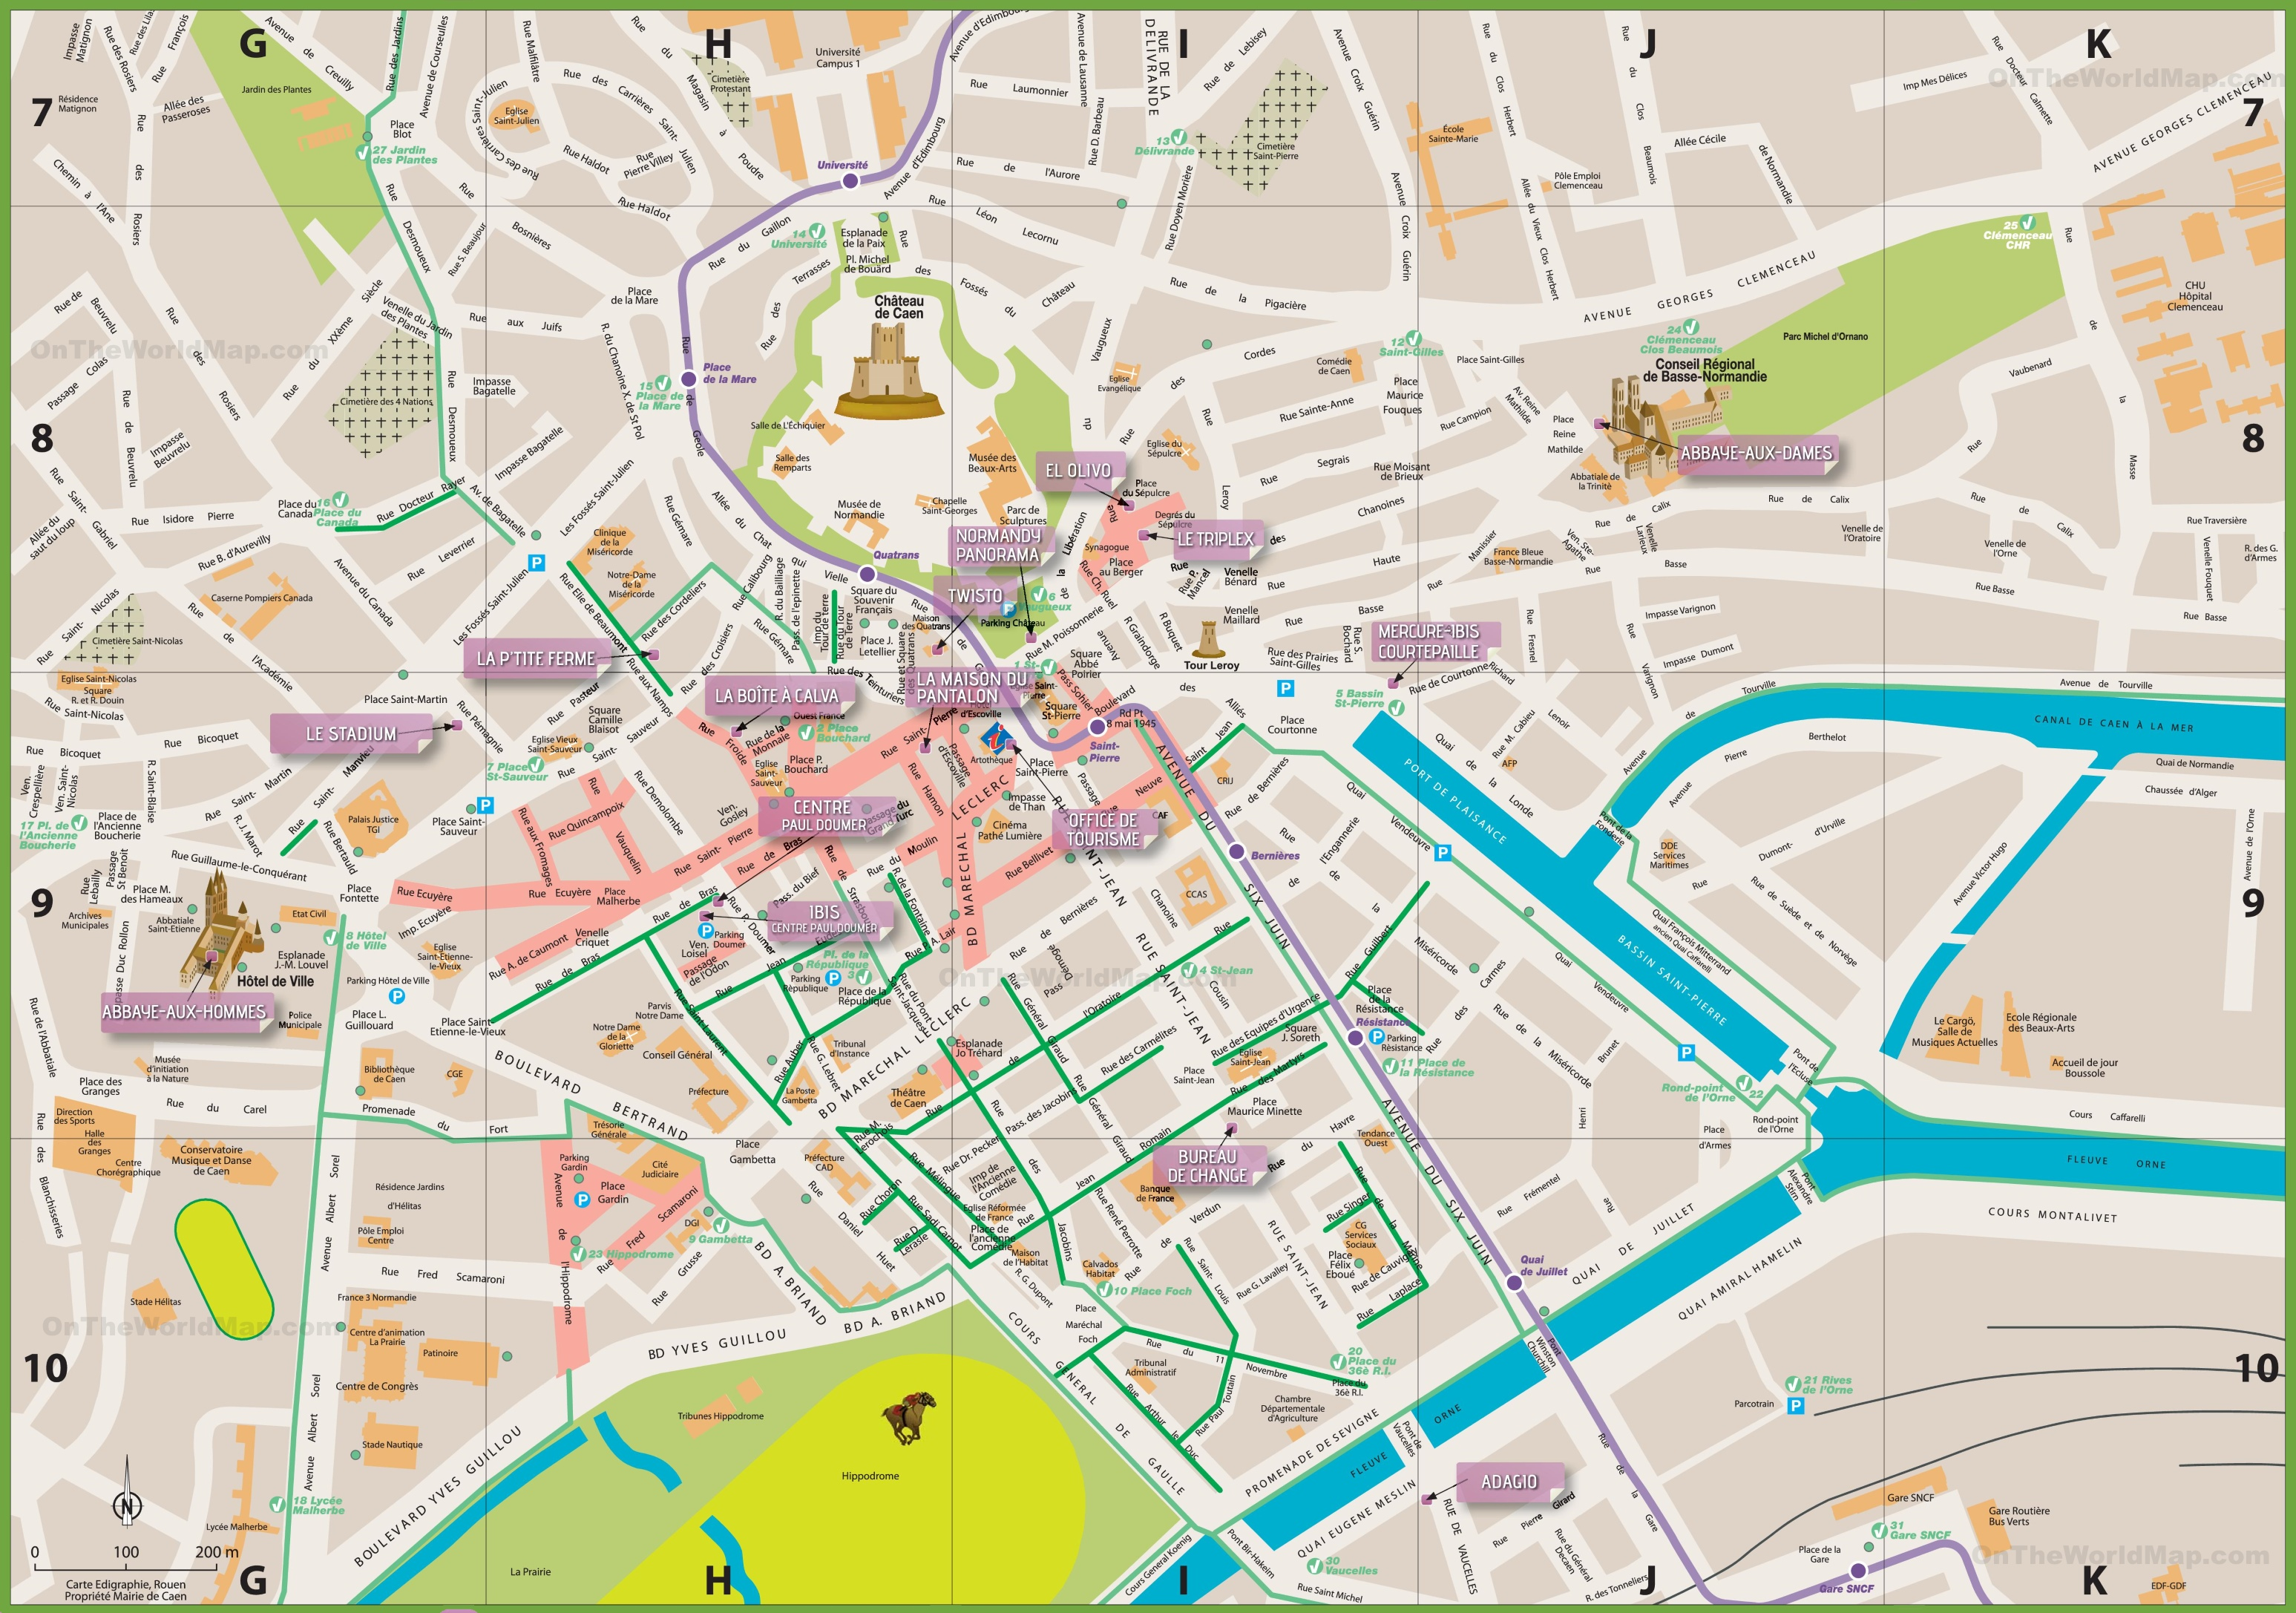 Caen city center map